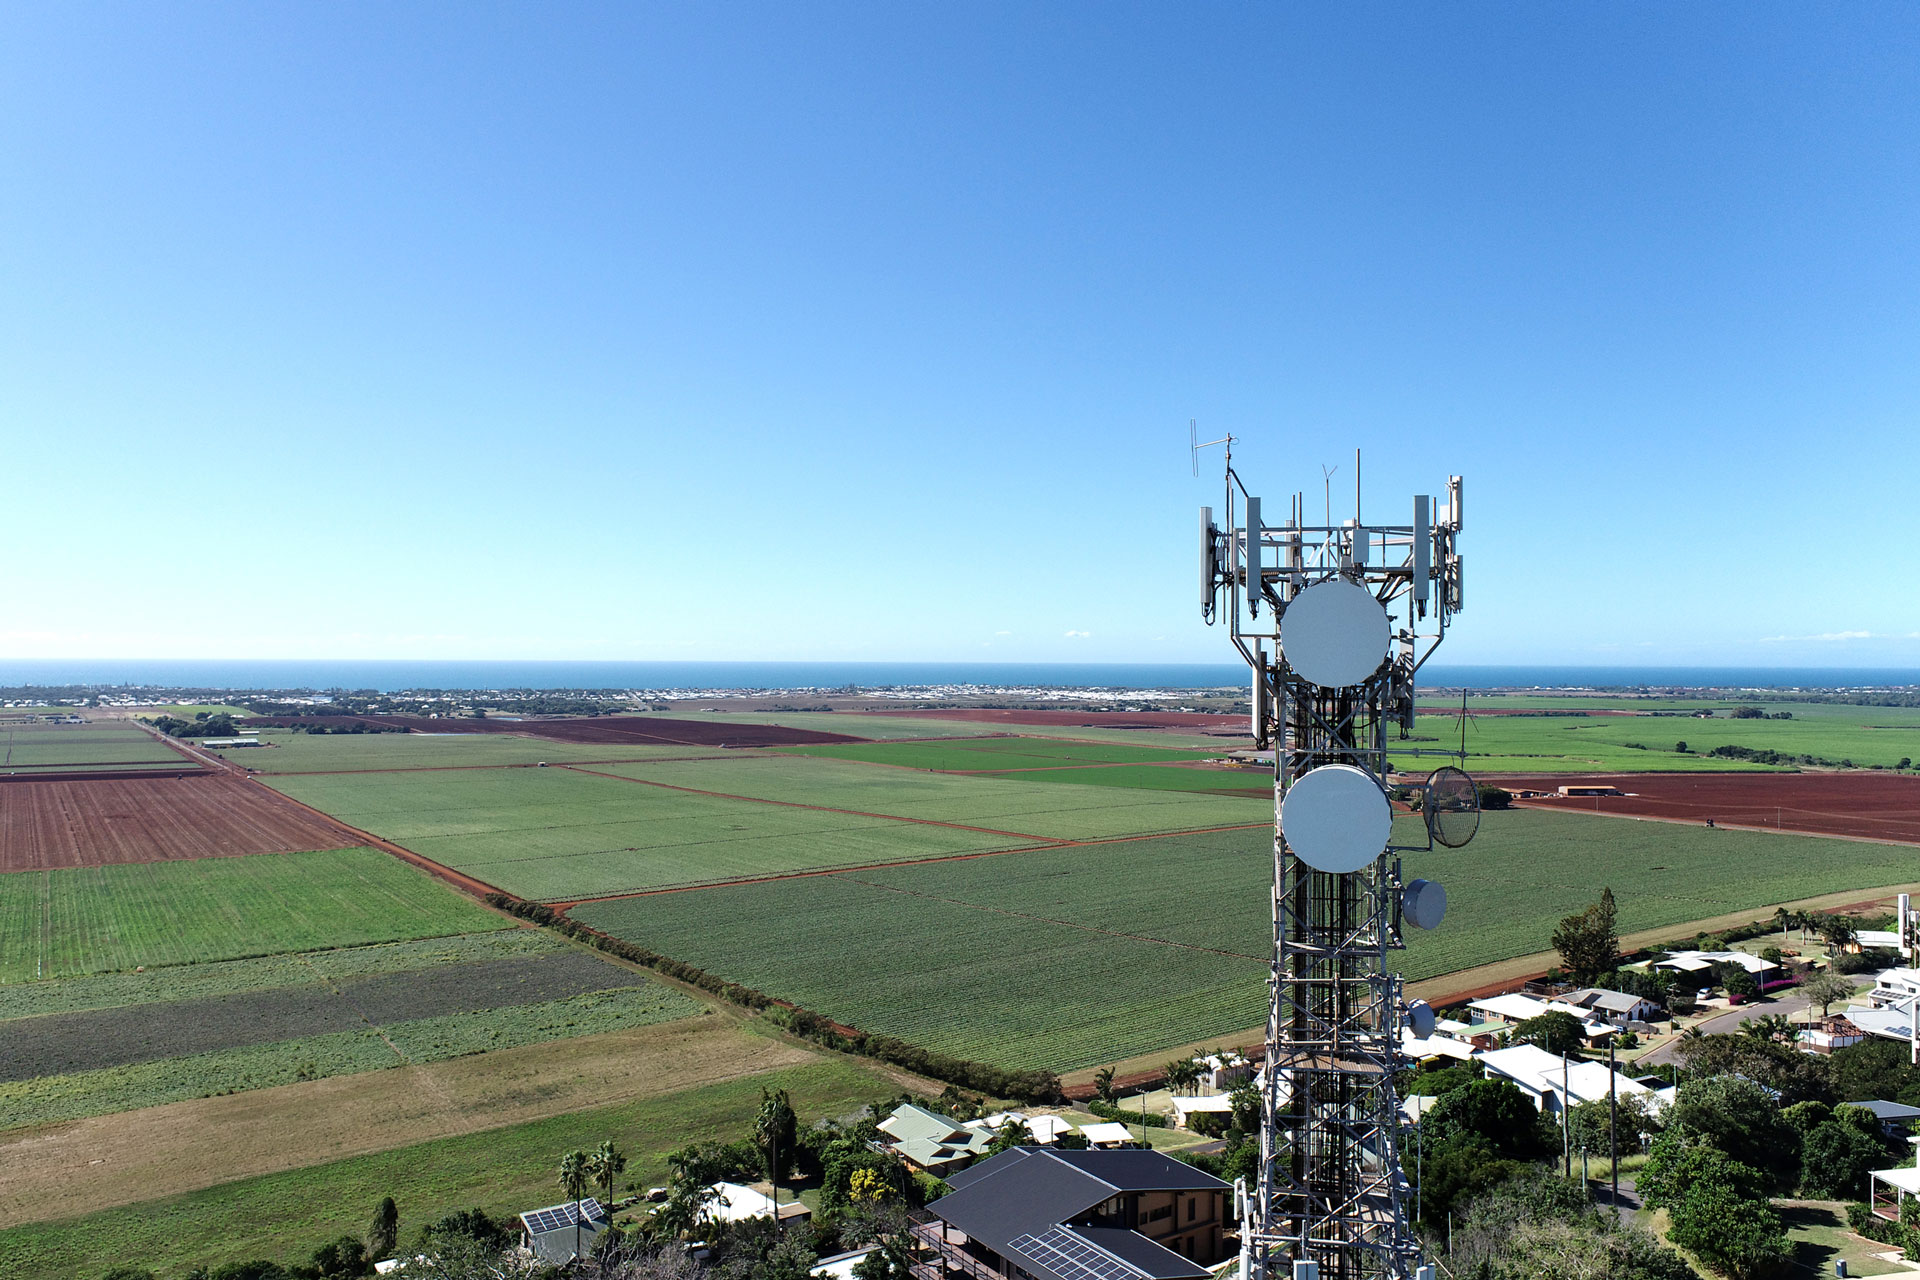 An Amplitel tower looking over country side out to the coast